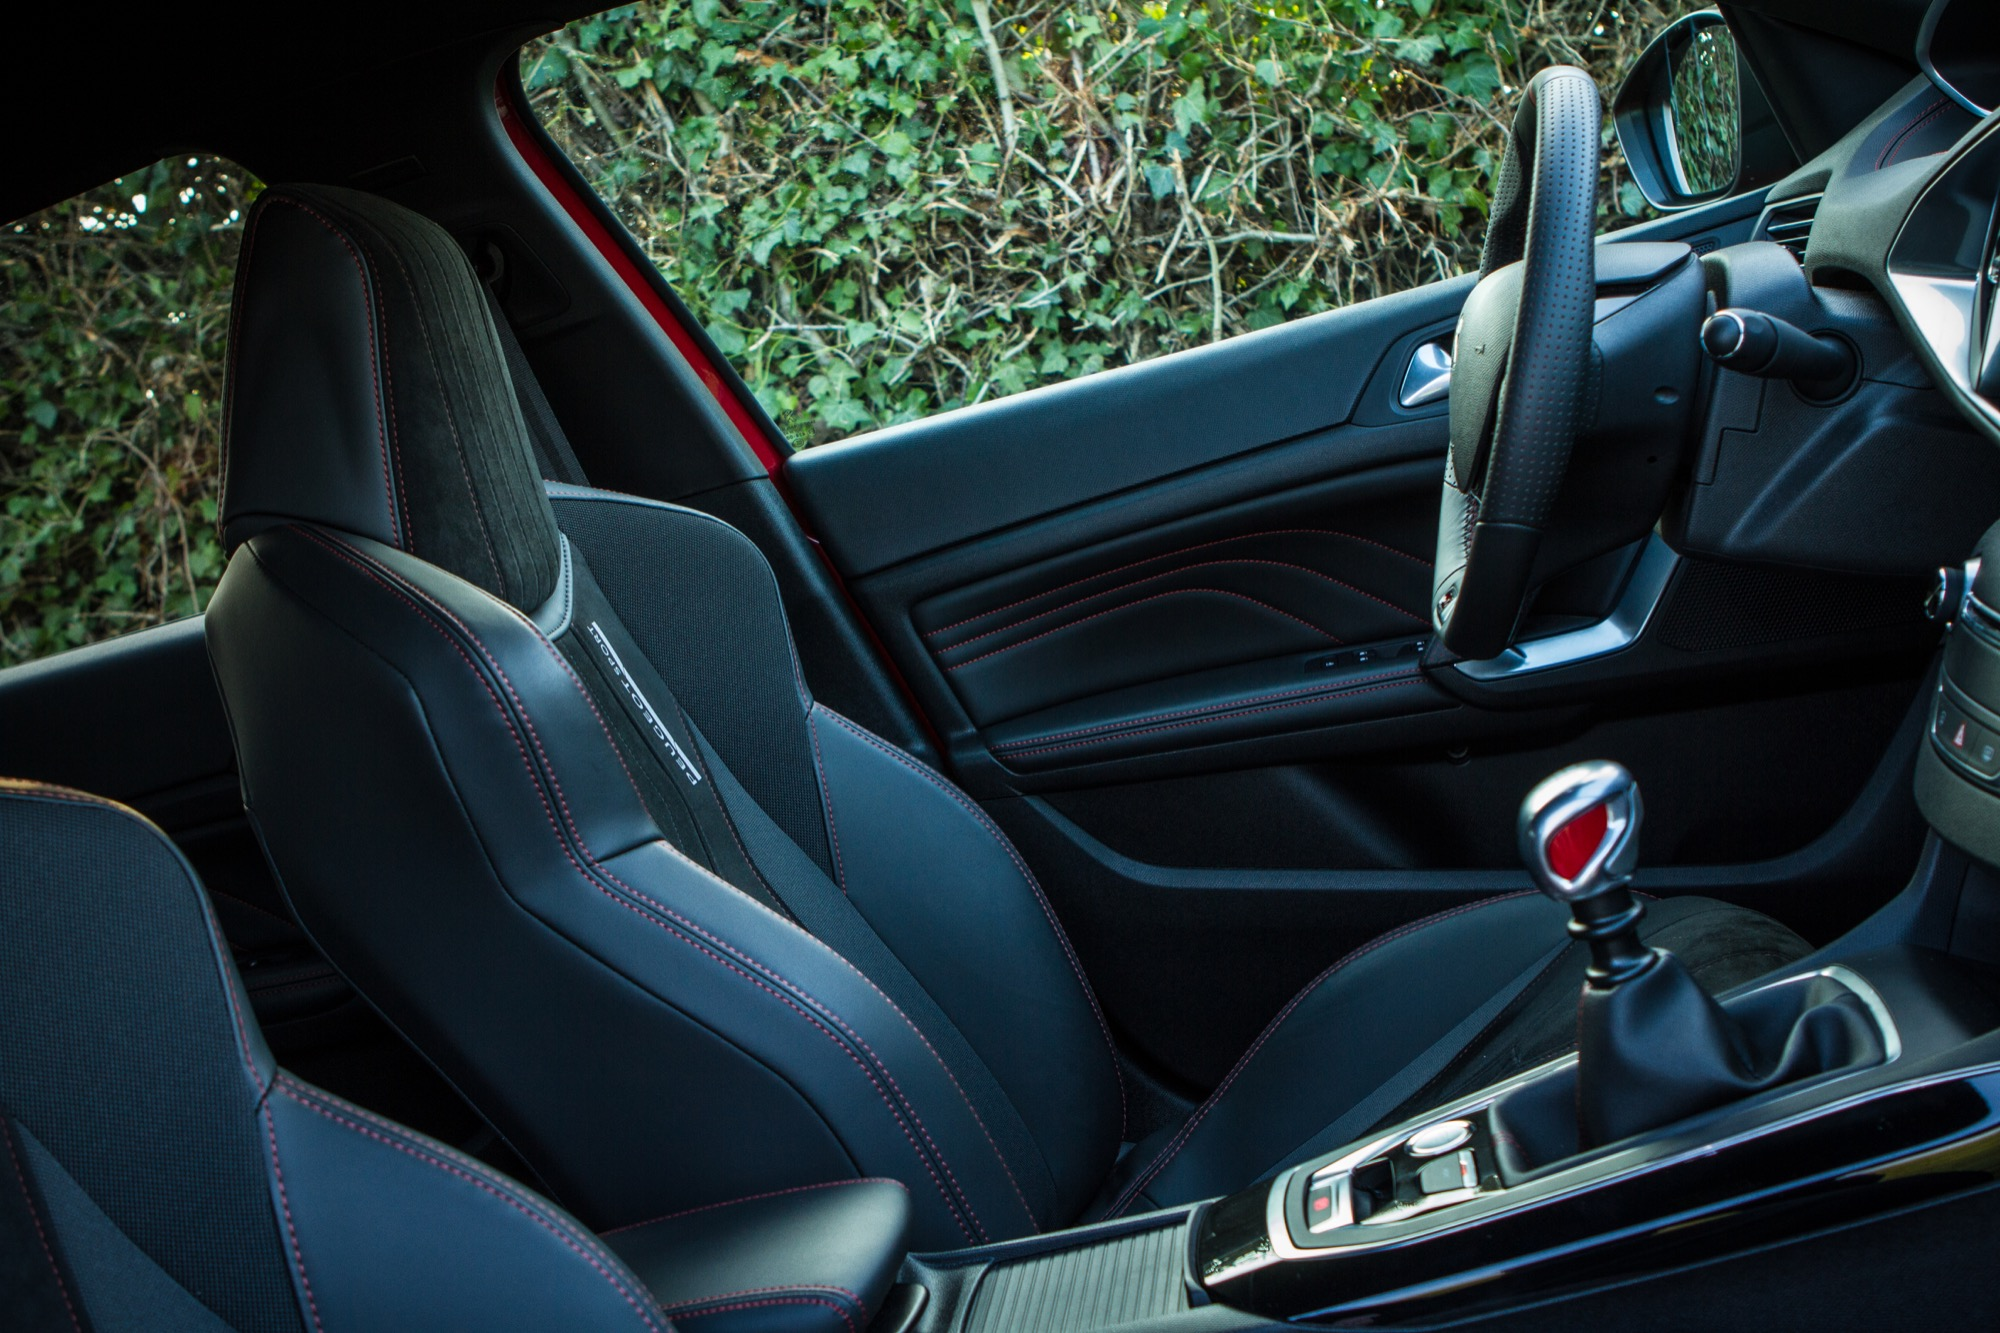 Essai peugeot 308 gti sport interieur 49 le blog de viinz for Interieur 308